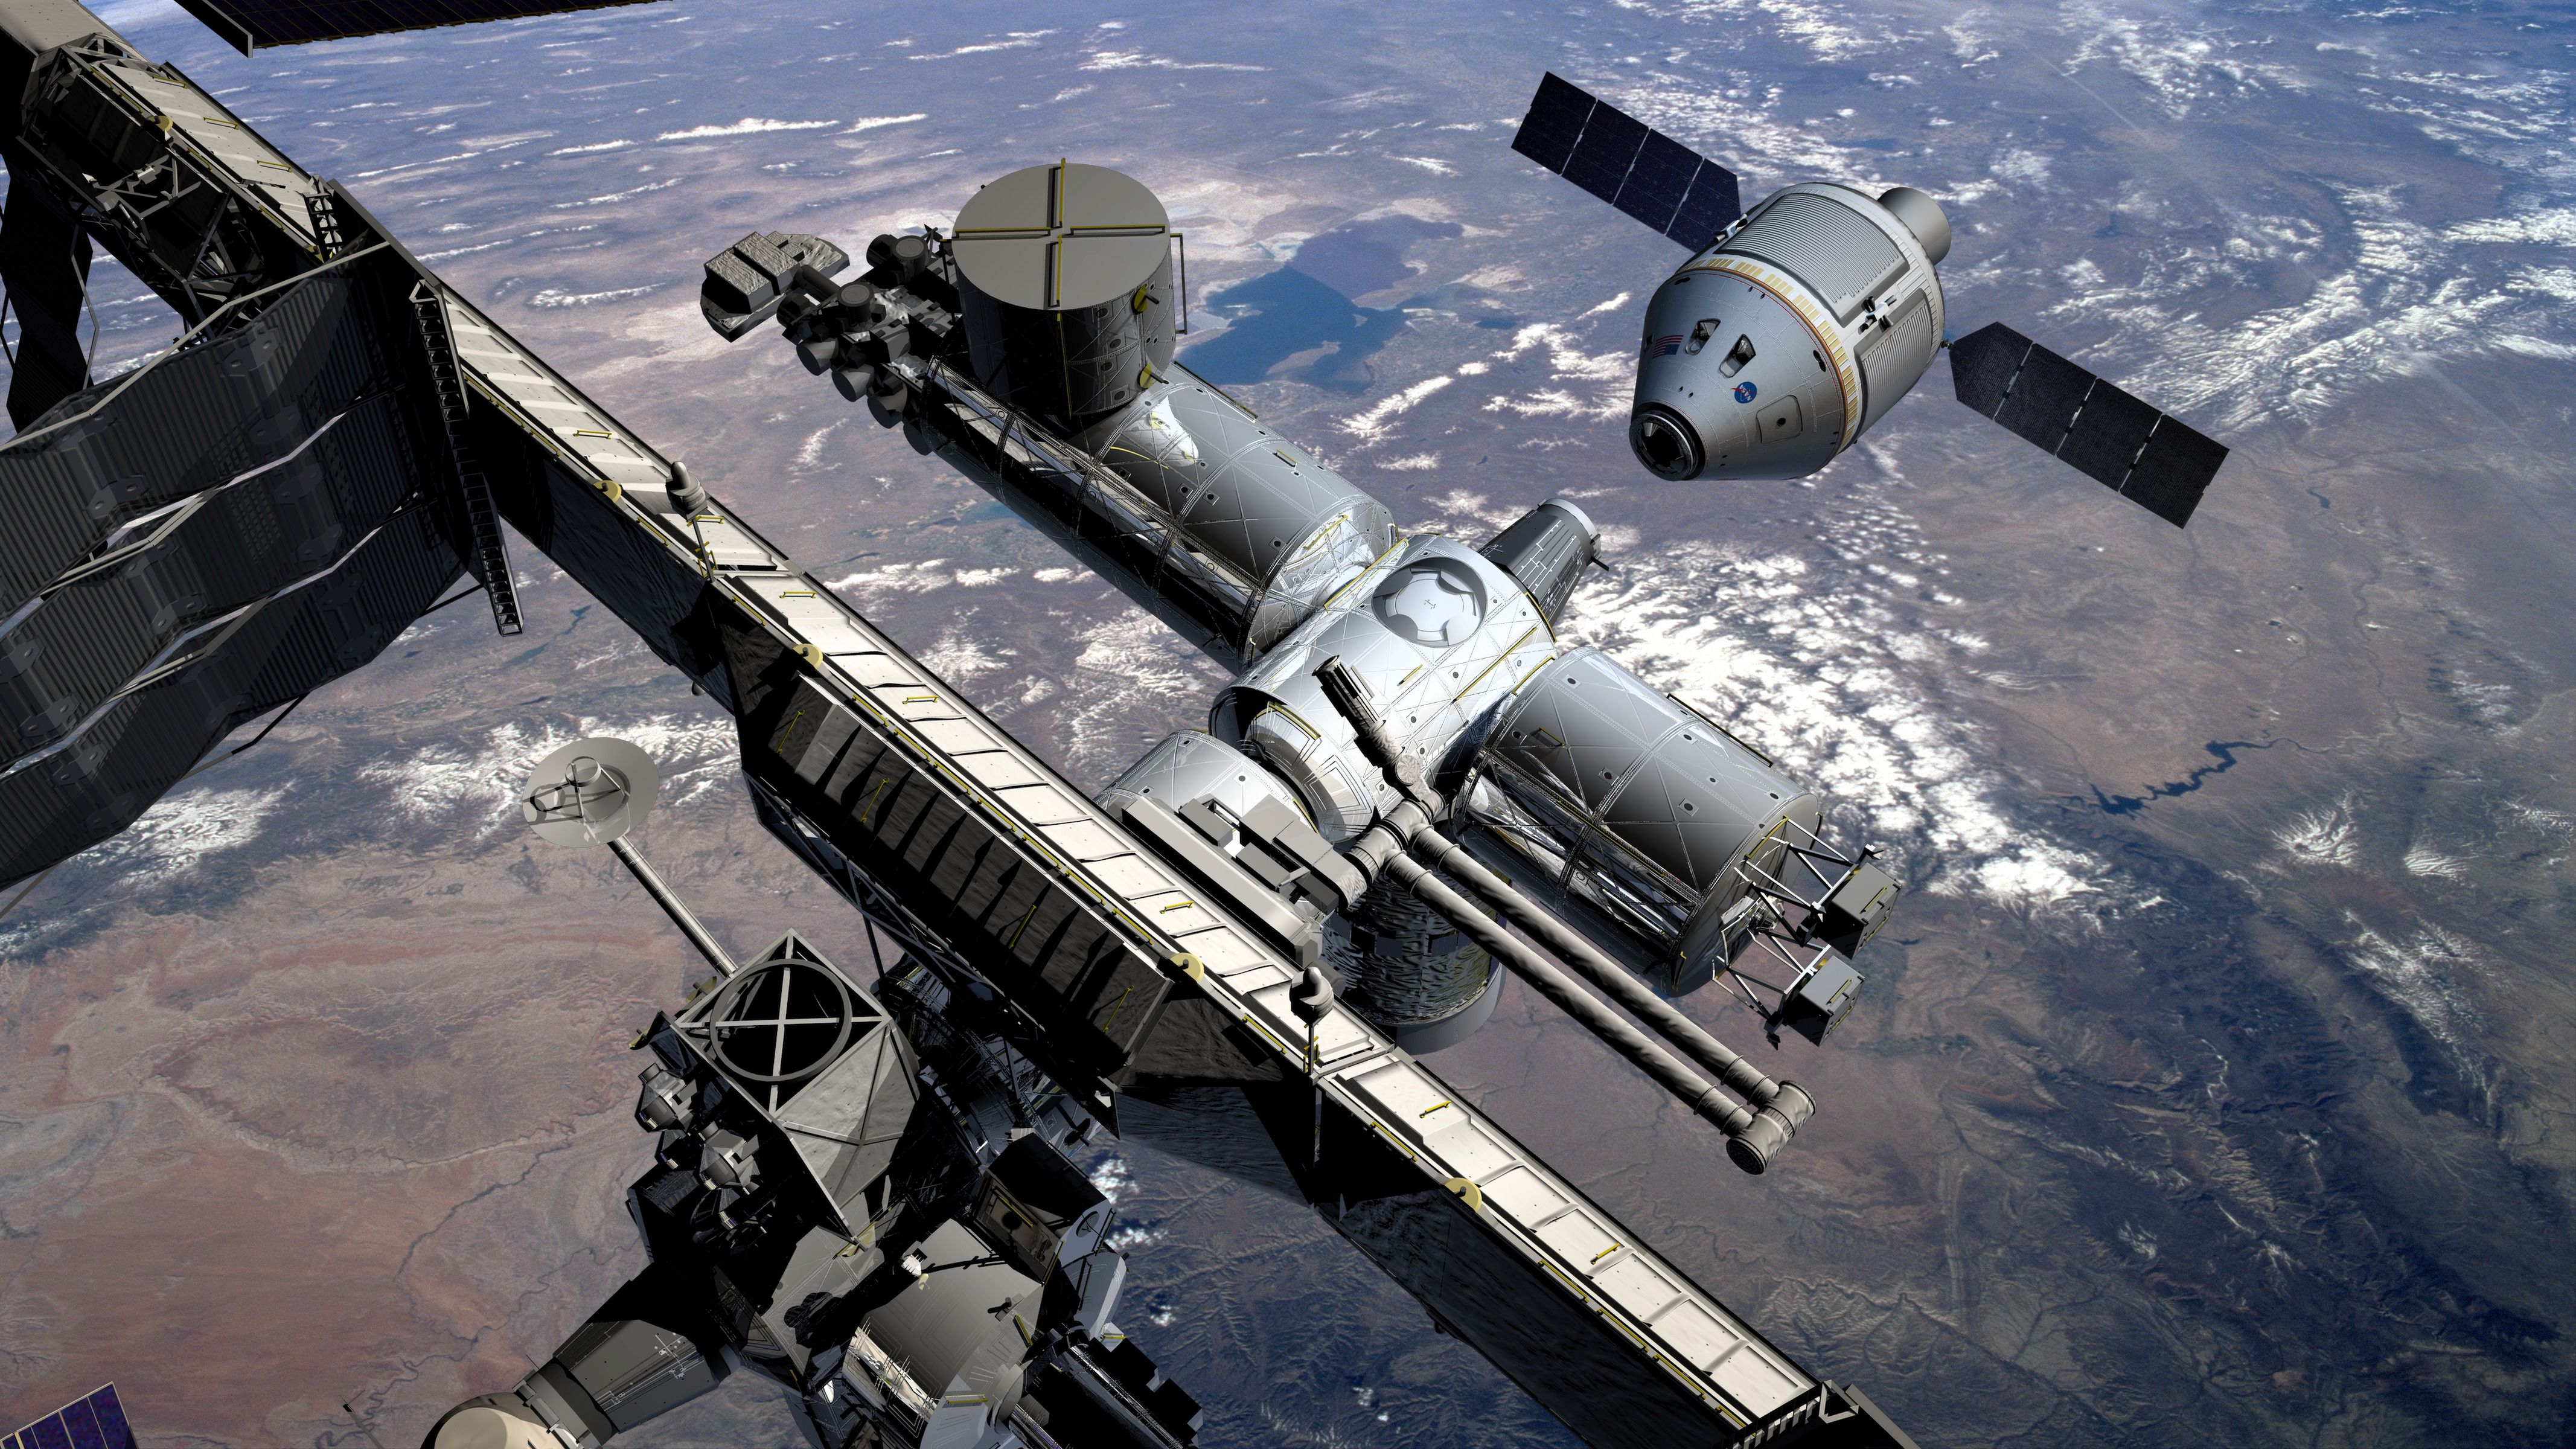 Iss Open Space Space Station Orbit Cosmos Planet Earth Life